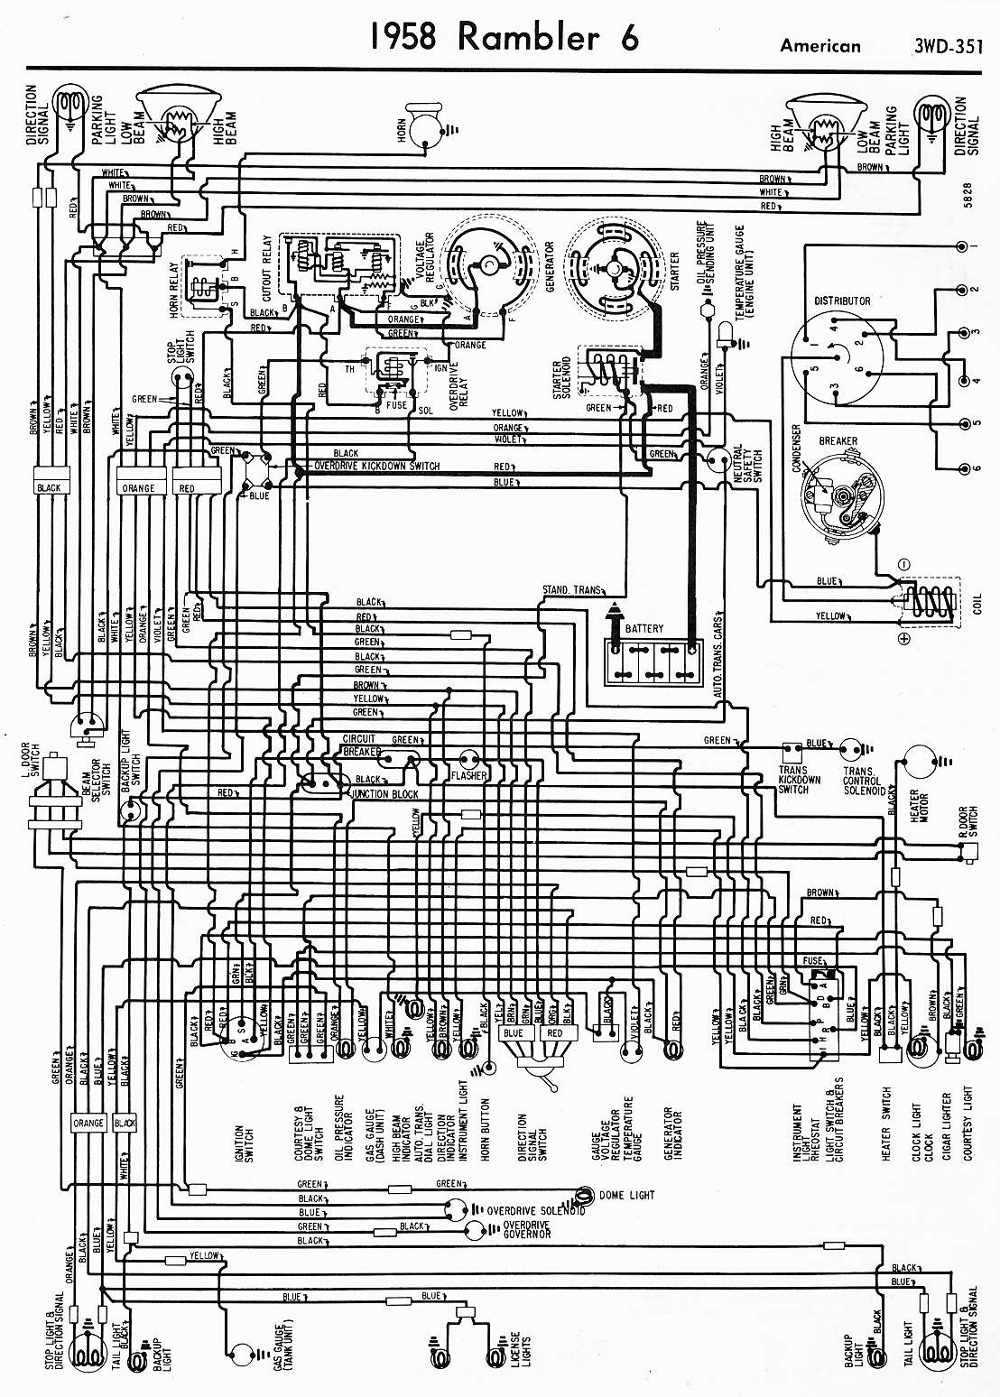 bzerob.com - technical articles library - wiring section 64 rambler wiring diagram